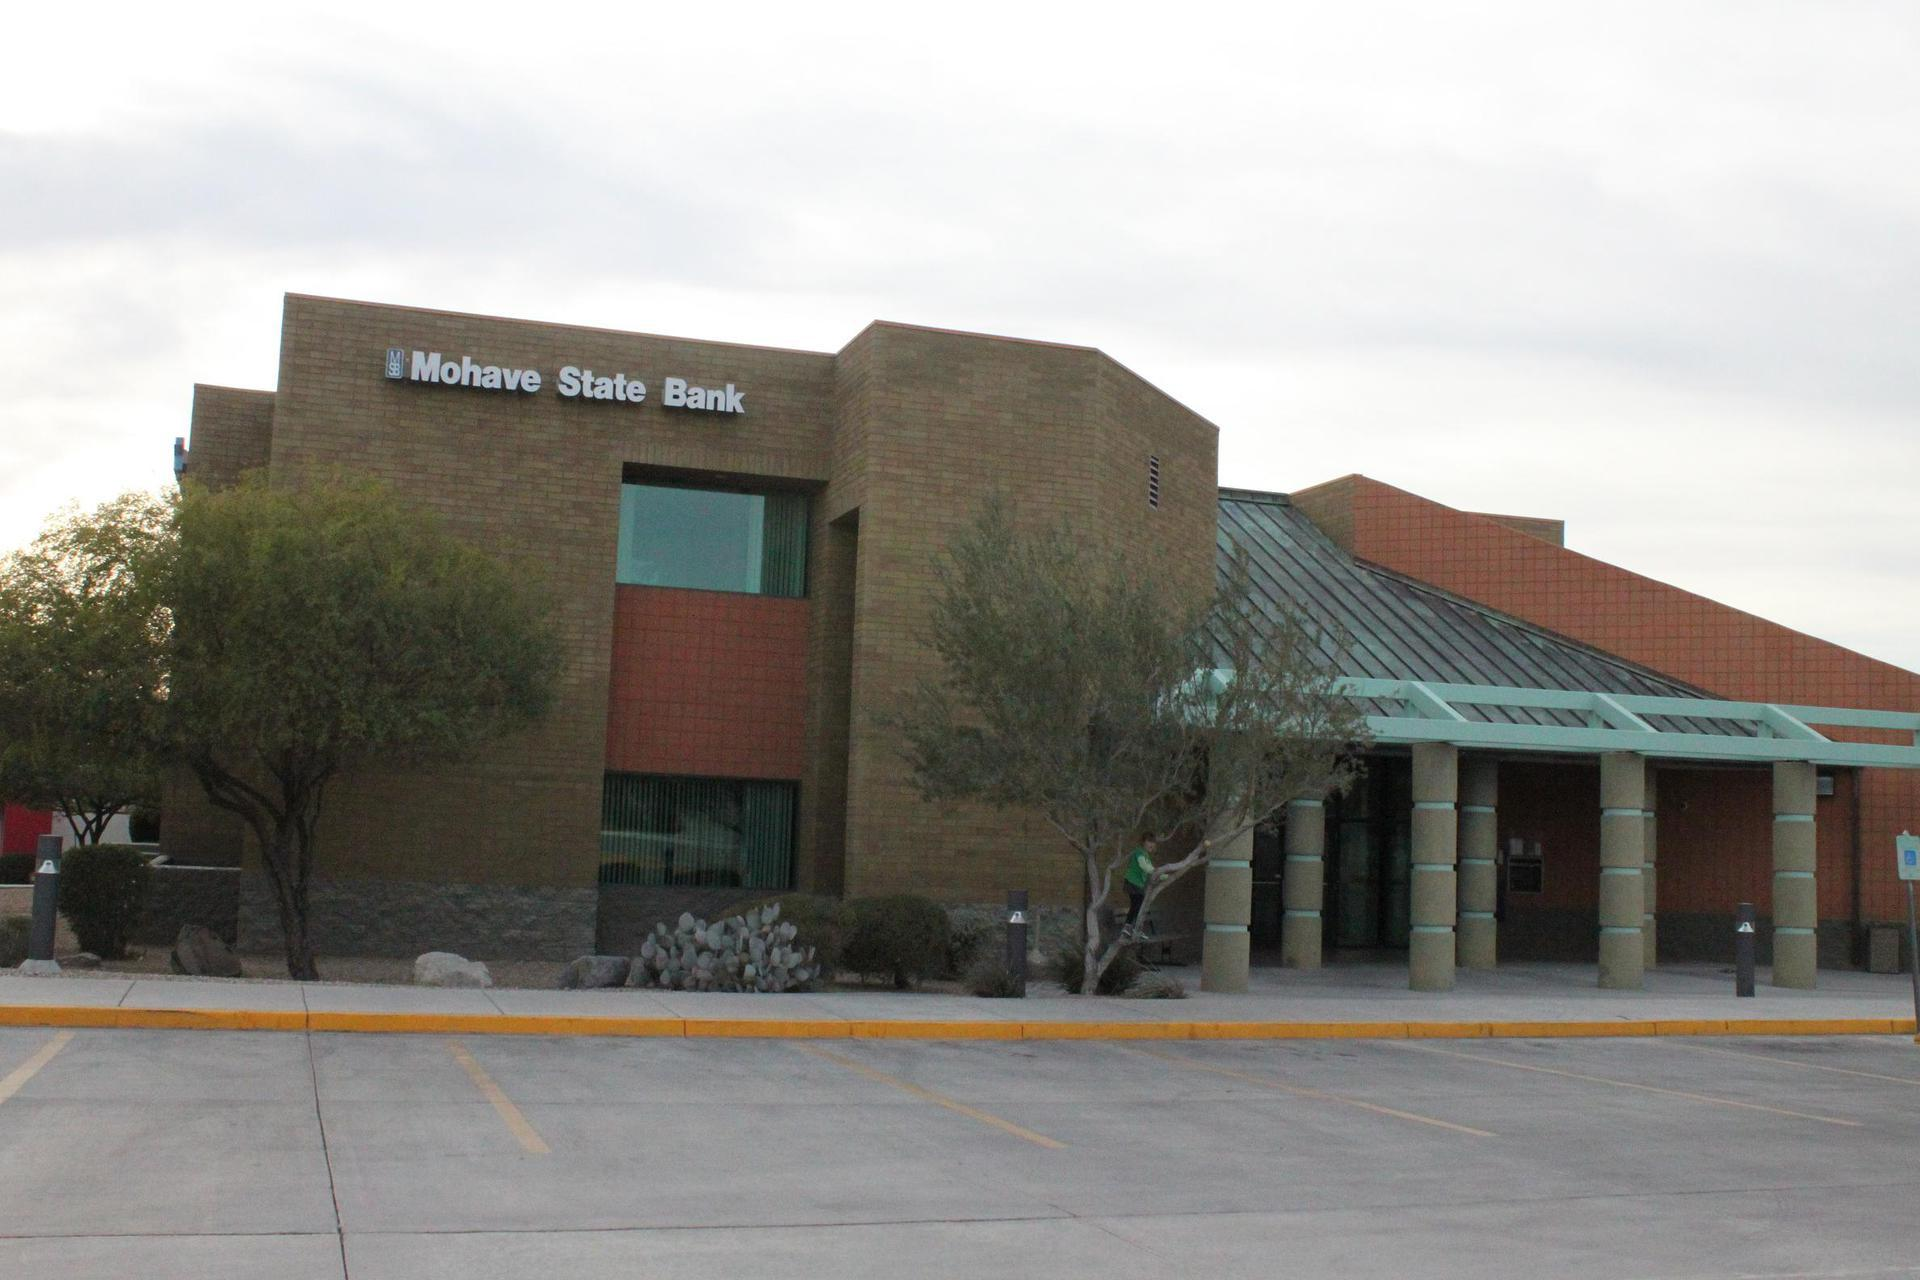 Experts installed custom glass at Mohave State Bank in Lake Havasu City